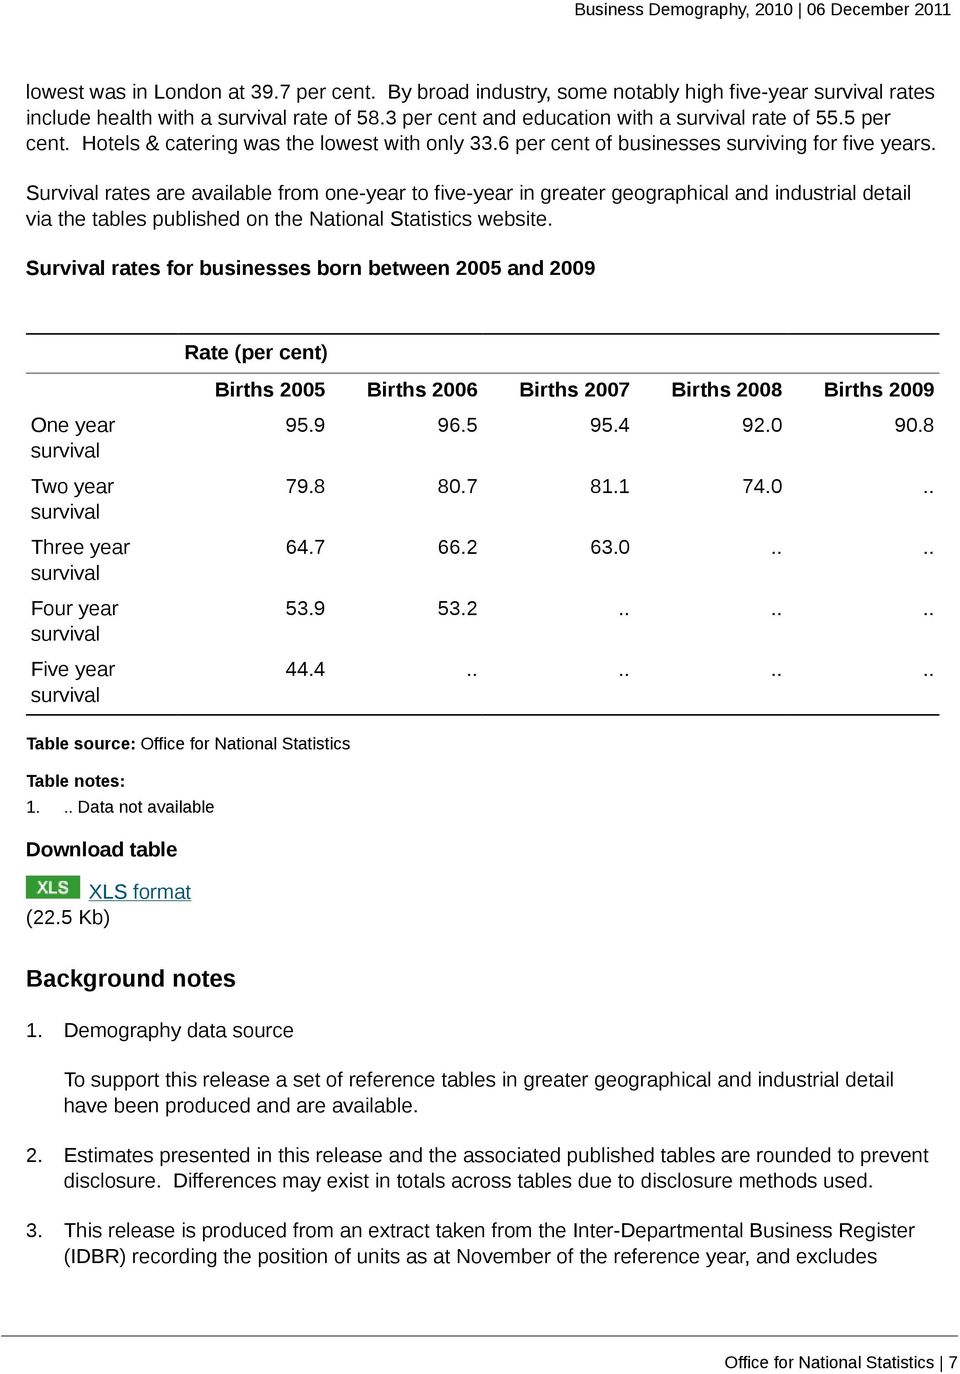 Survival rates are available from one-year to five-year in greater geographical and industrial detail via the tables published on the National Statistics website.